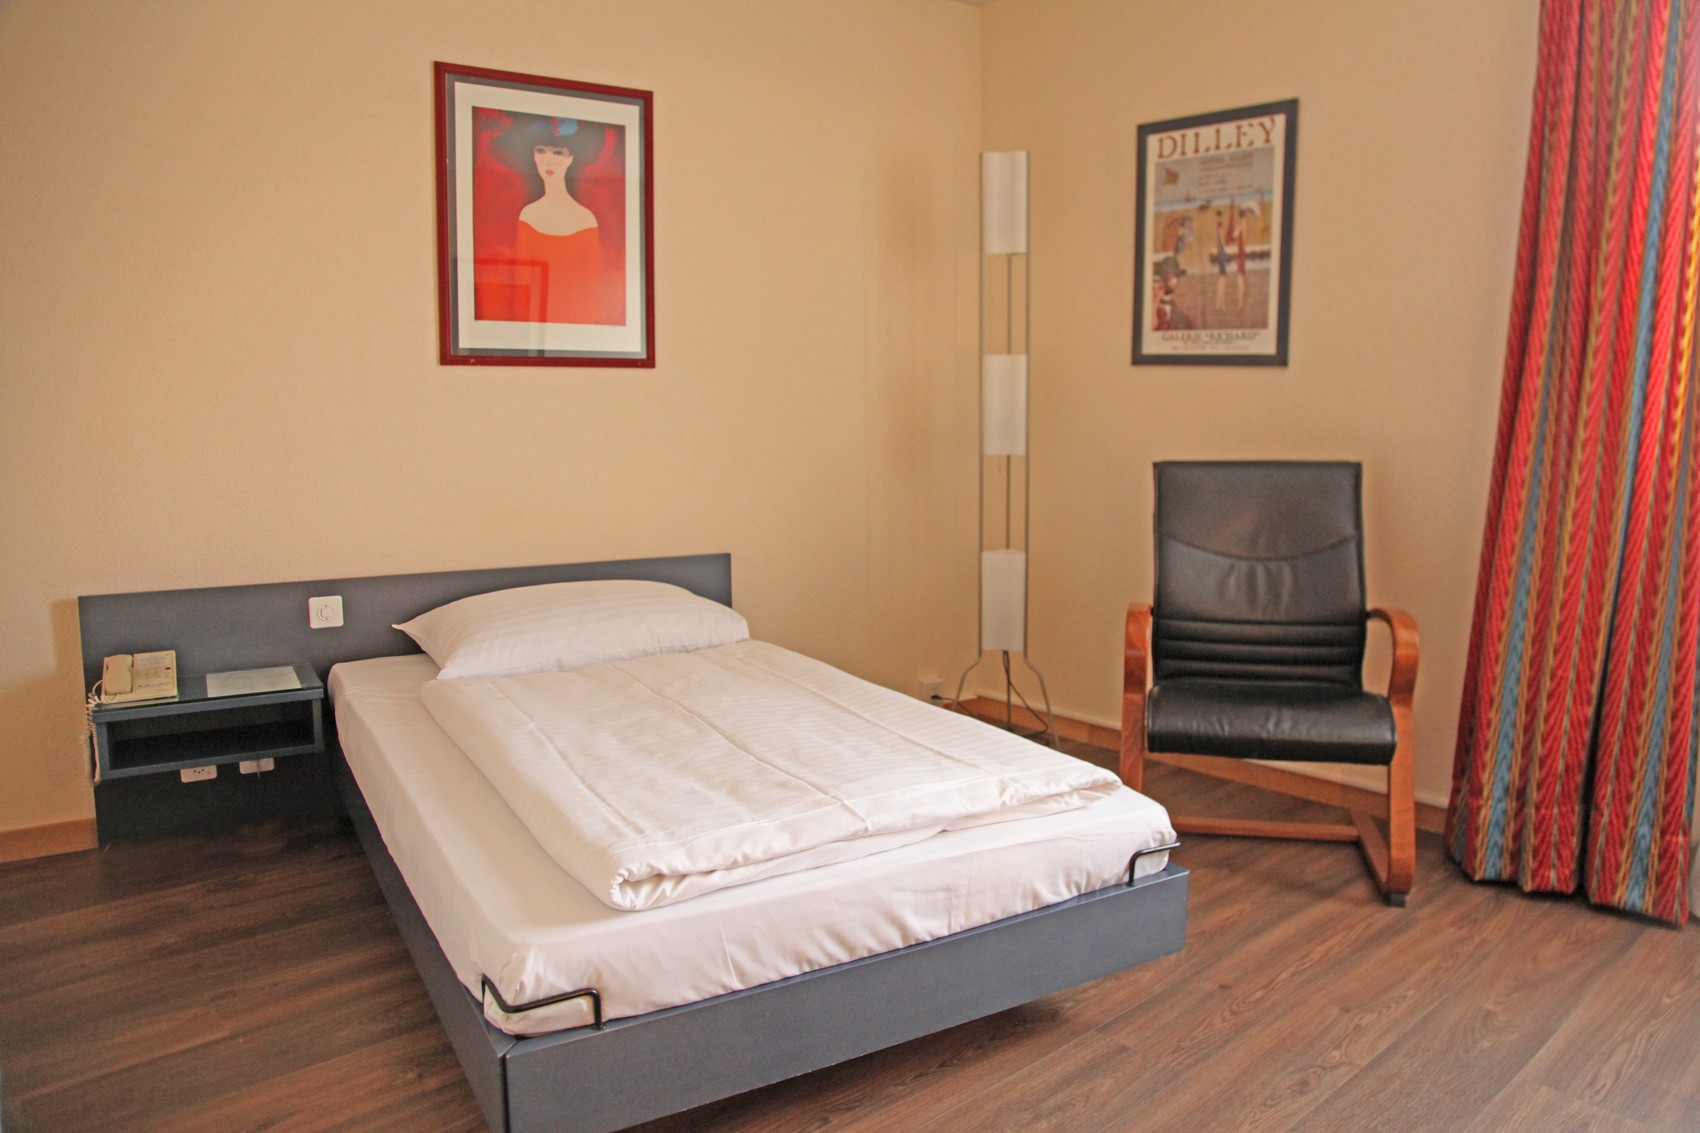 chambres-hotel-3-etoiles-carouge